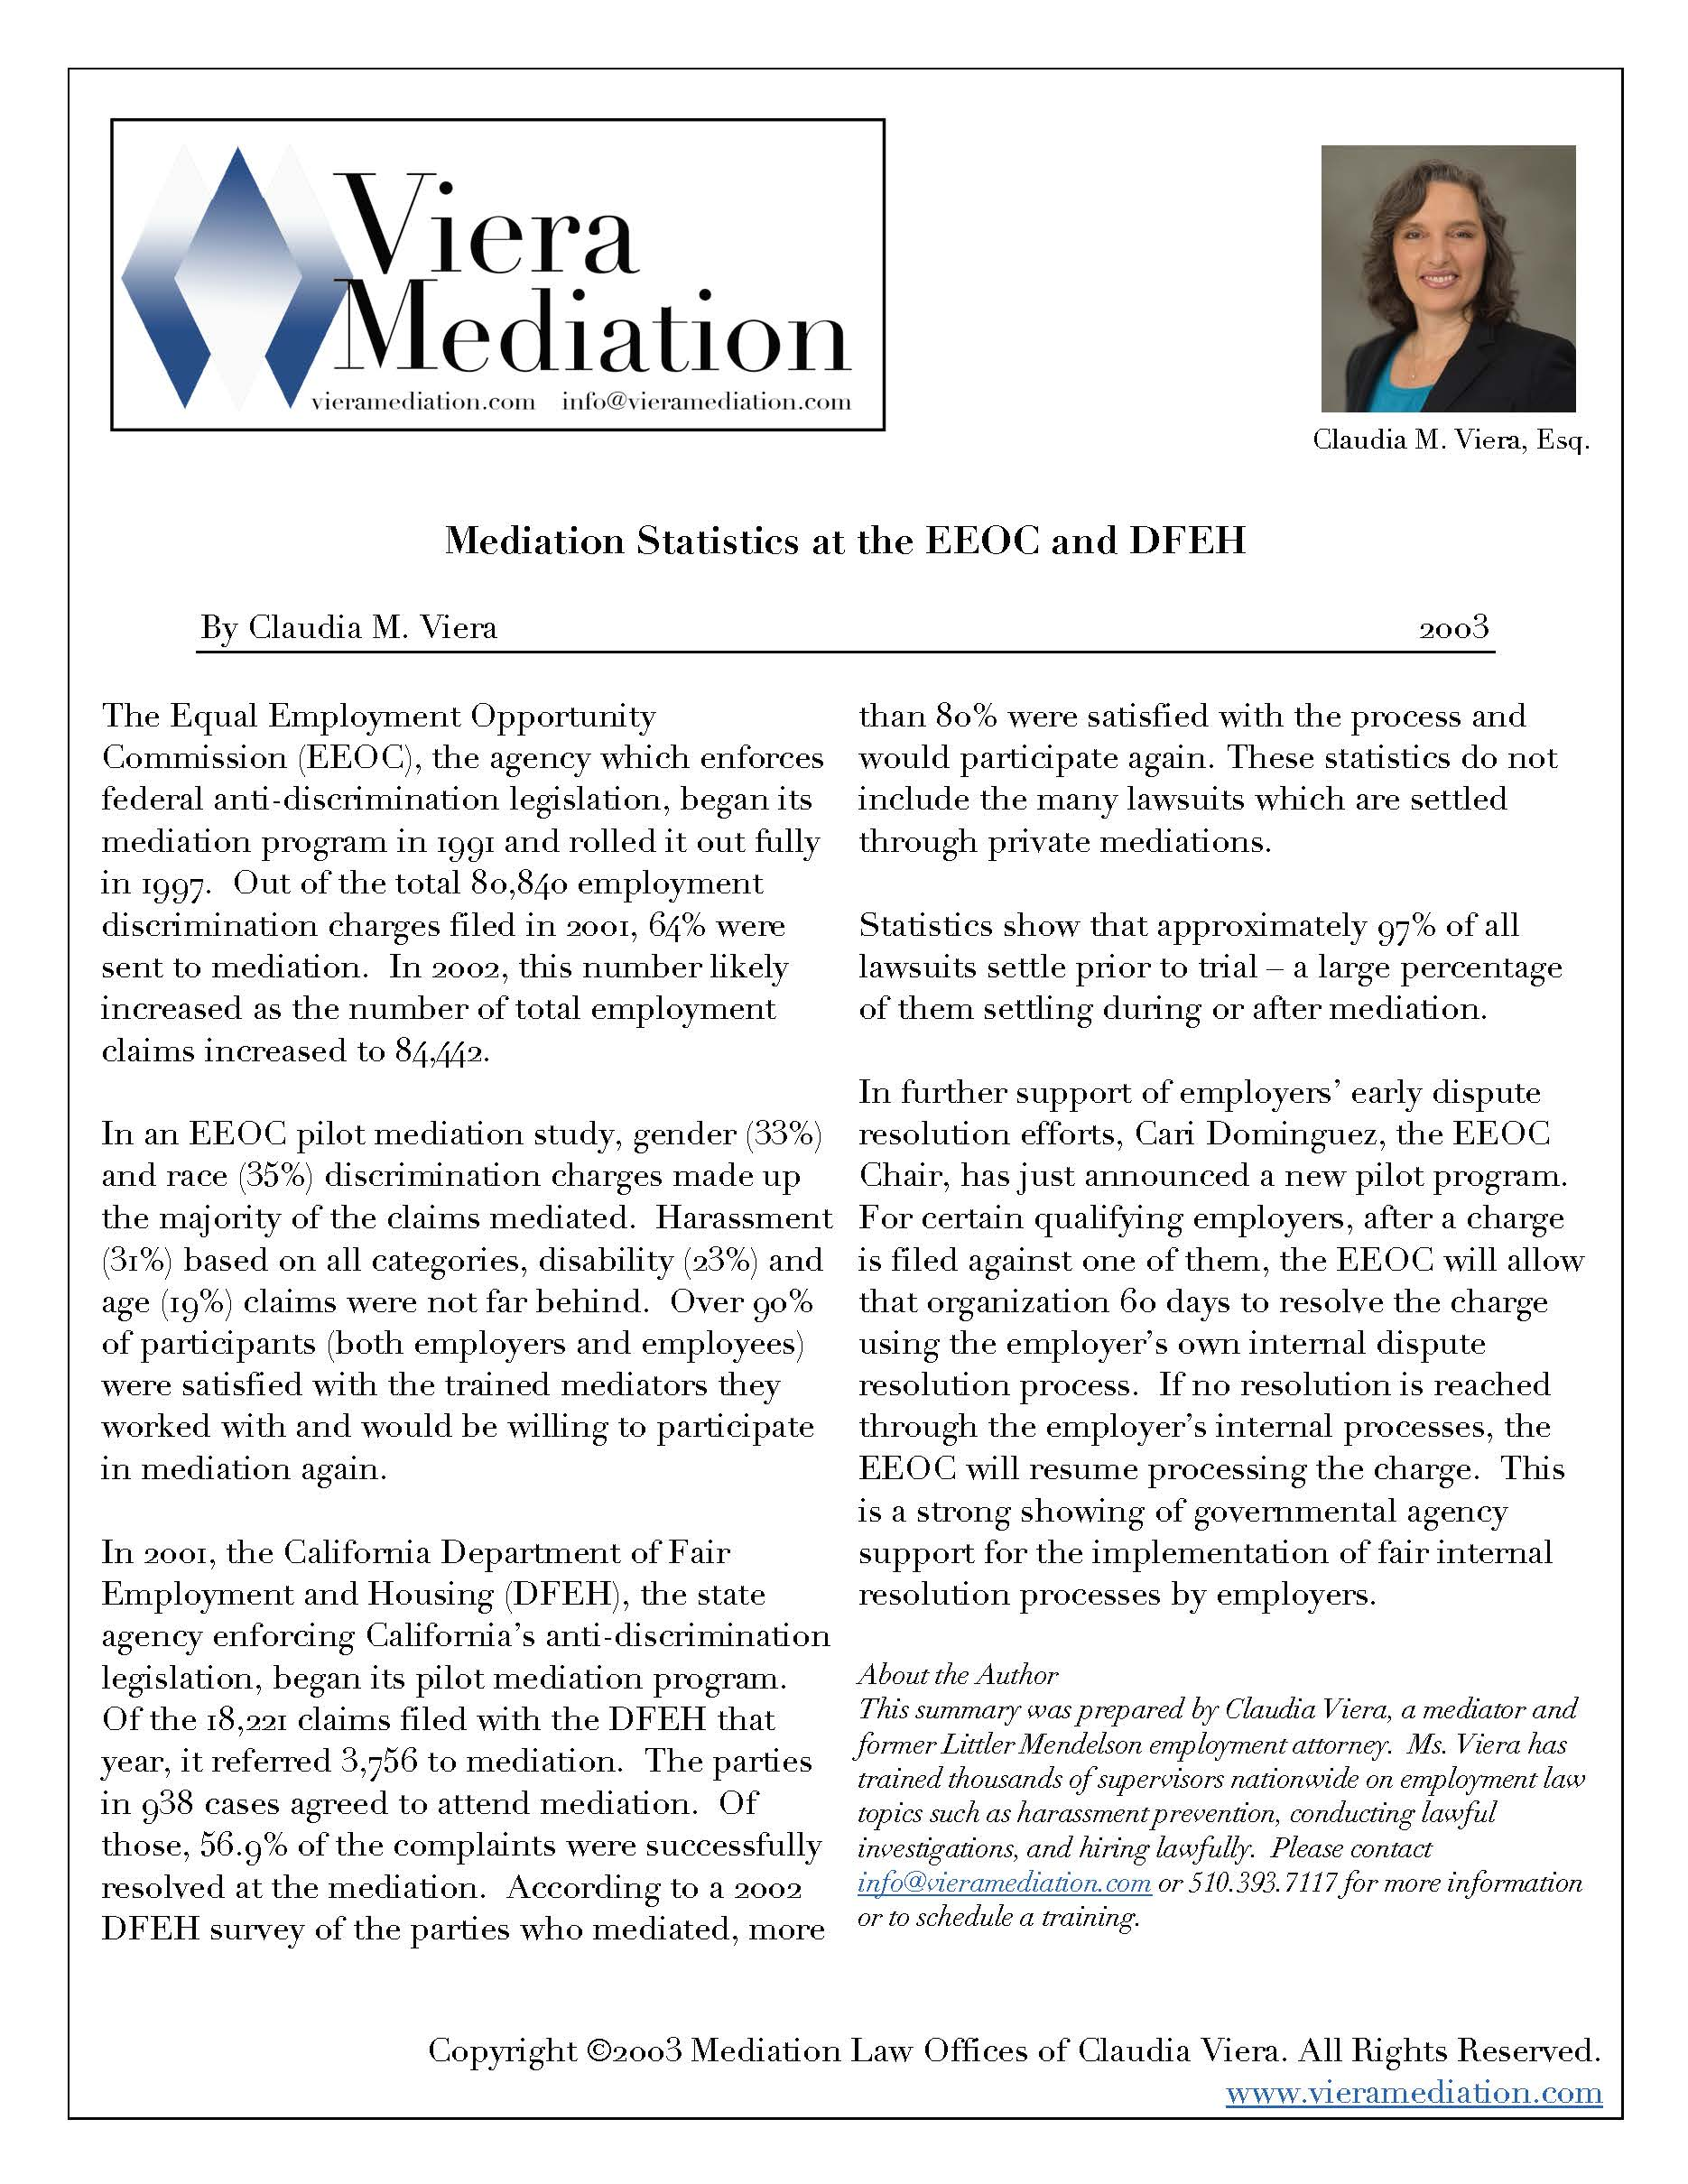 Mediation Statistics at the EEOC & DFEH